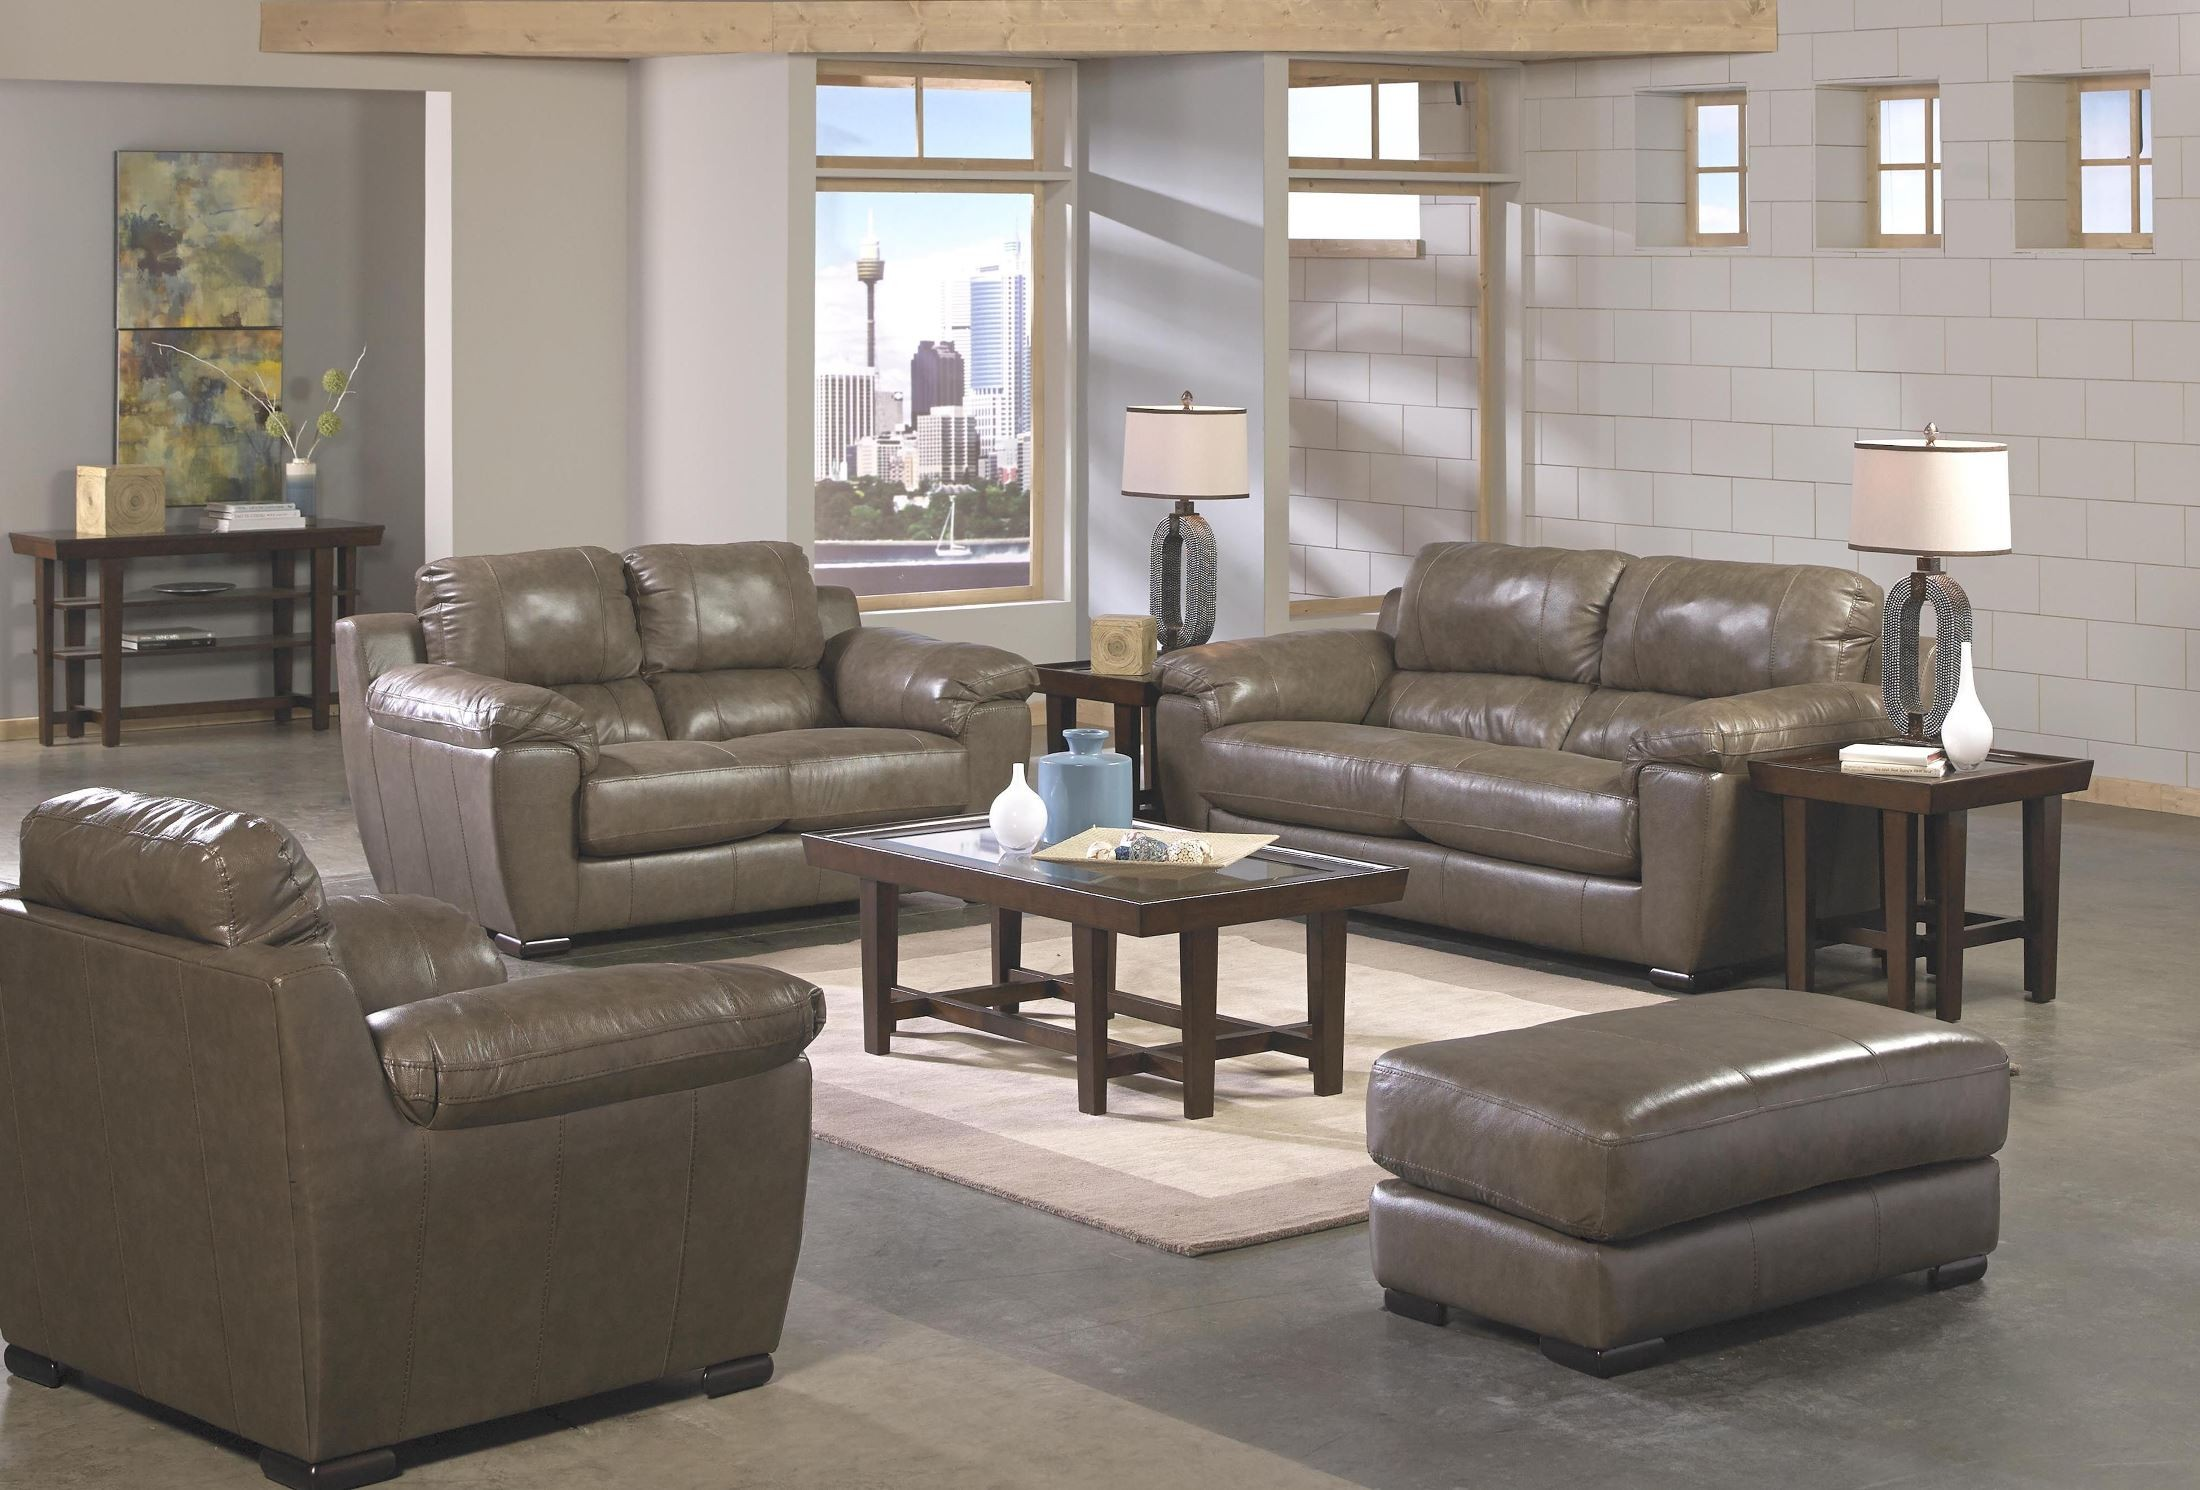 Sergio Smoke Living Room Set From Jackson